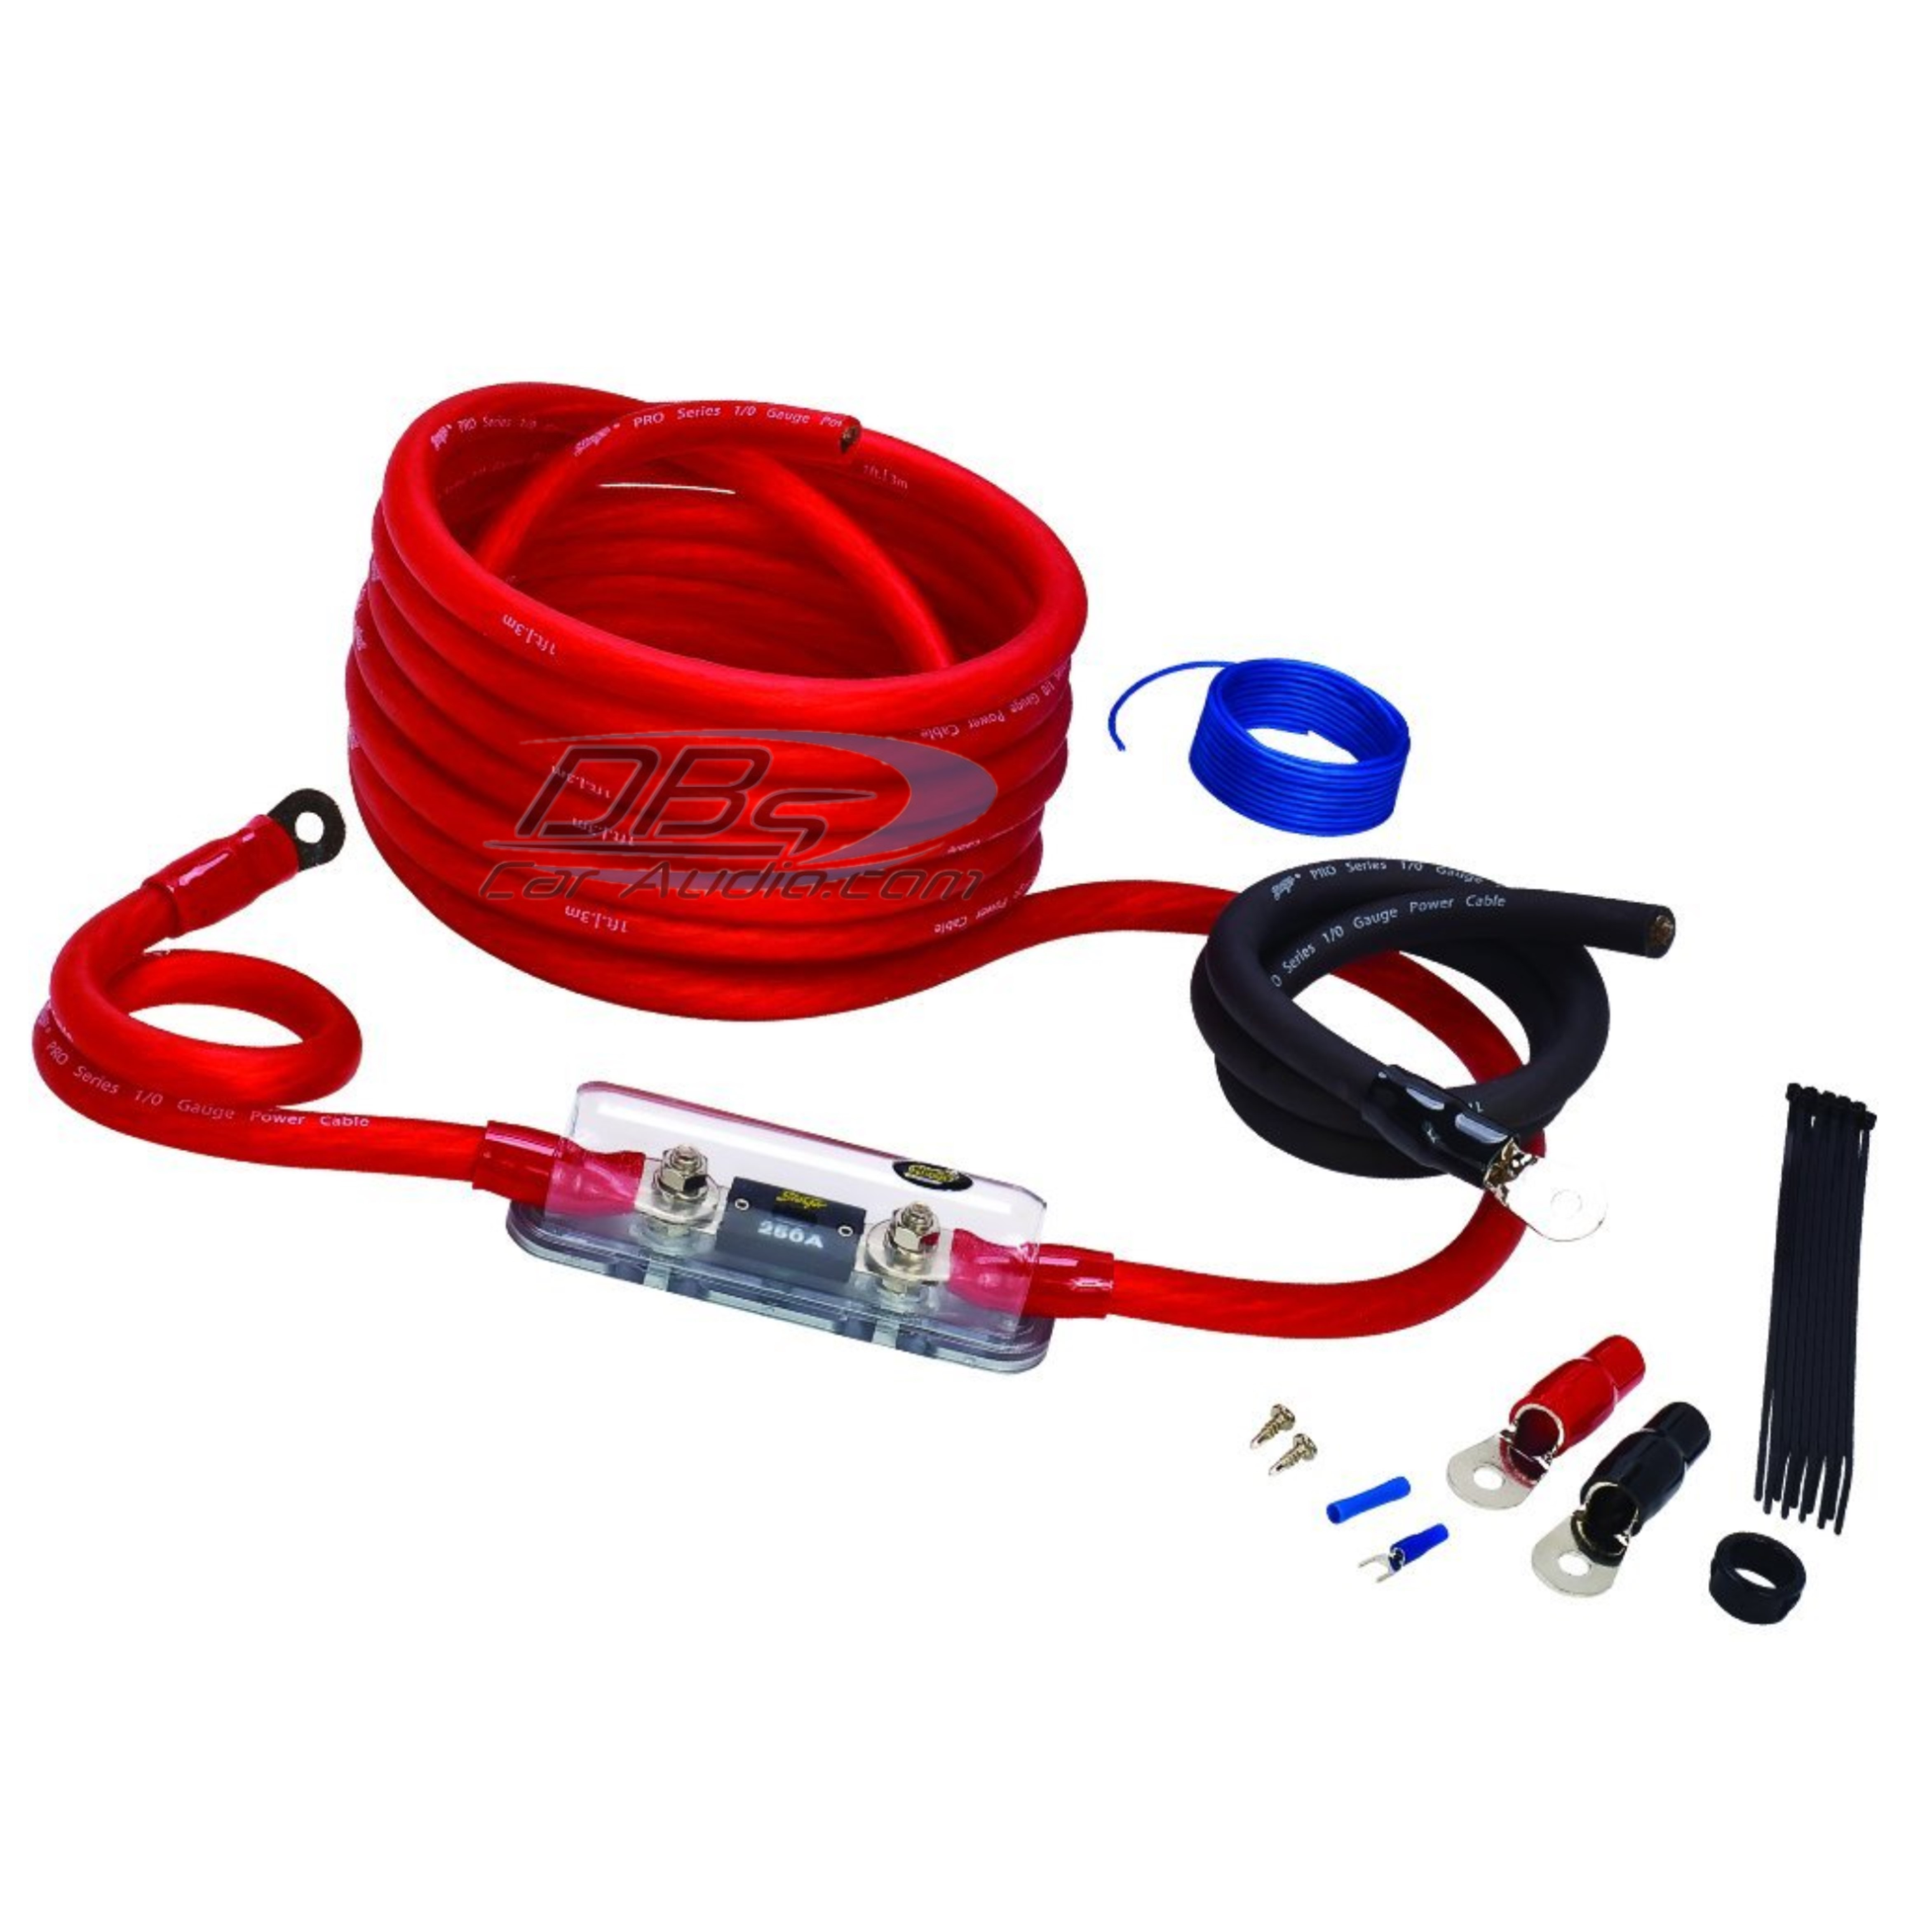 stinger 1 0 gauge 100 ofc power wiring kit rh dbscaraudio com 0 gauge wiring kit cape town 0 gauge wiring kit south africa